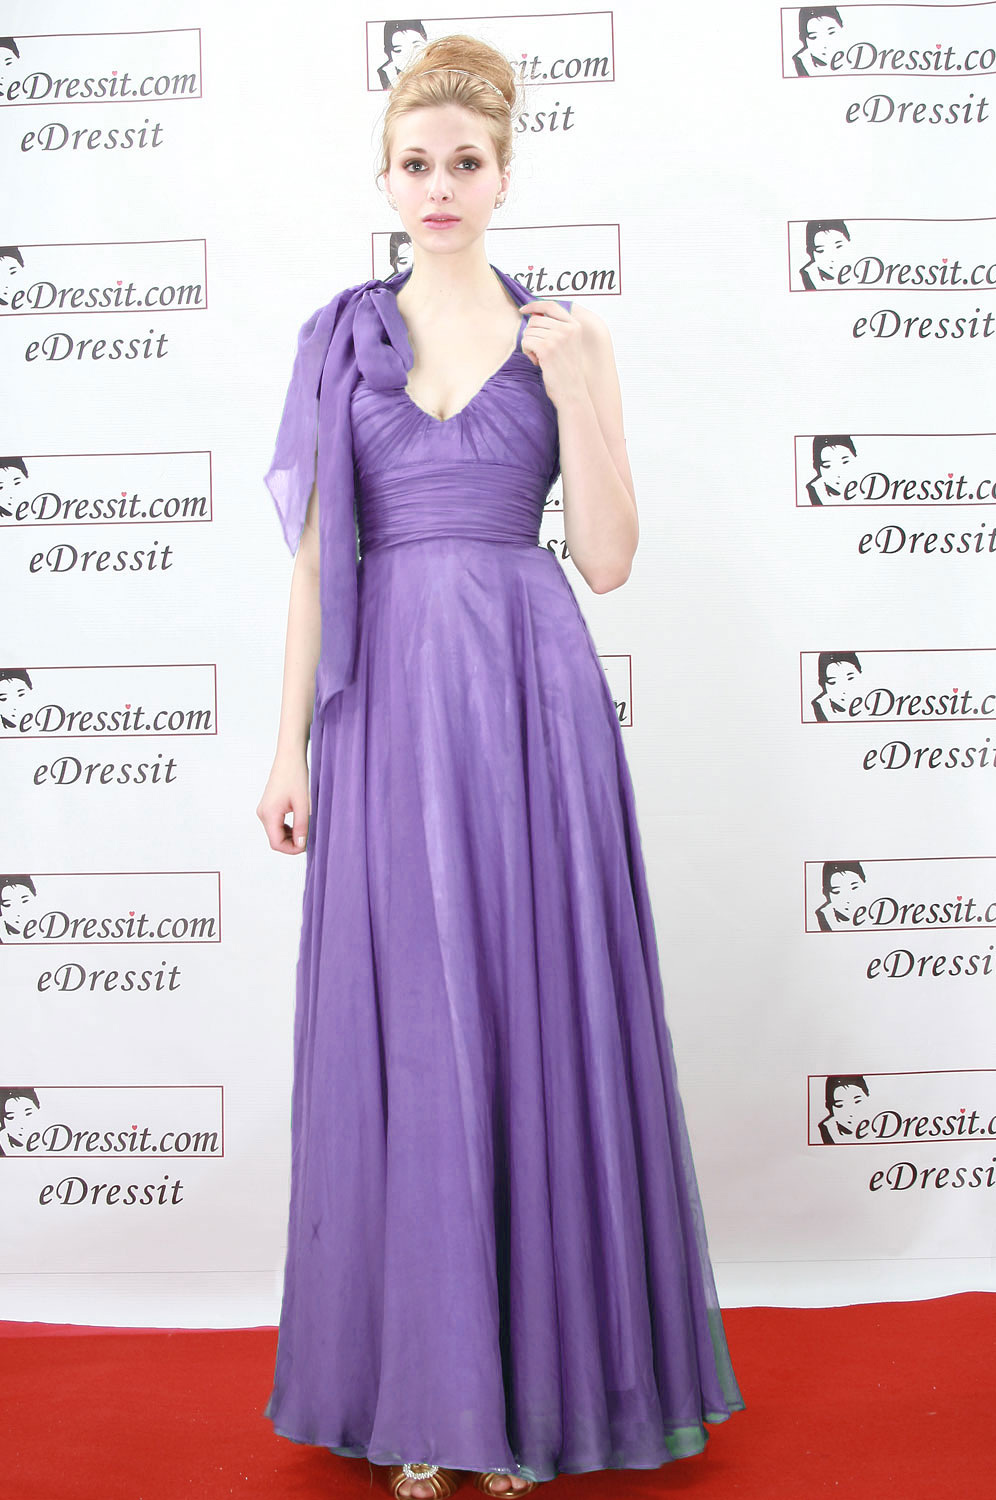 On sale evening dress (00081304o)